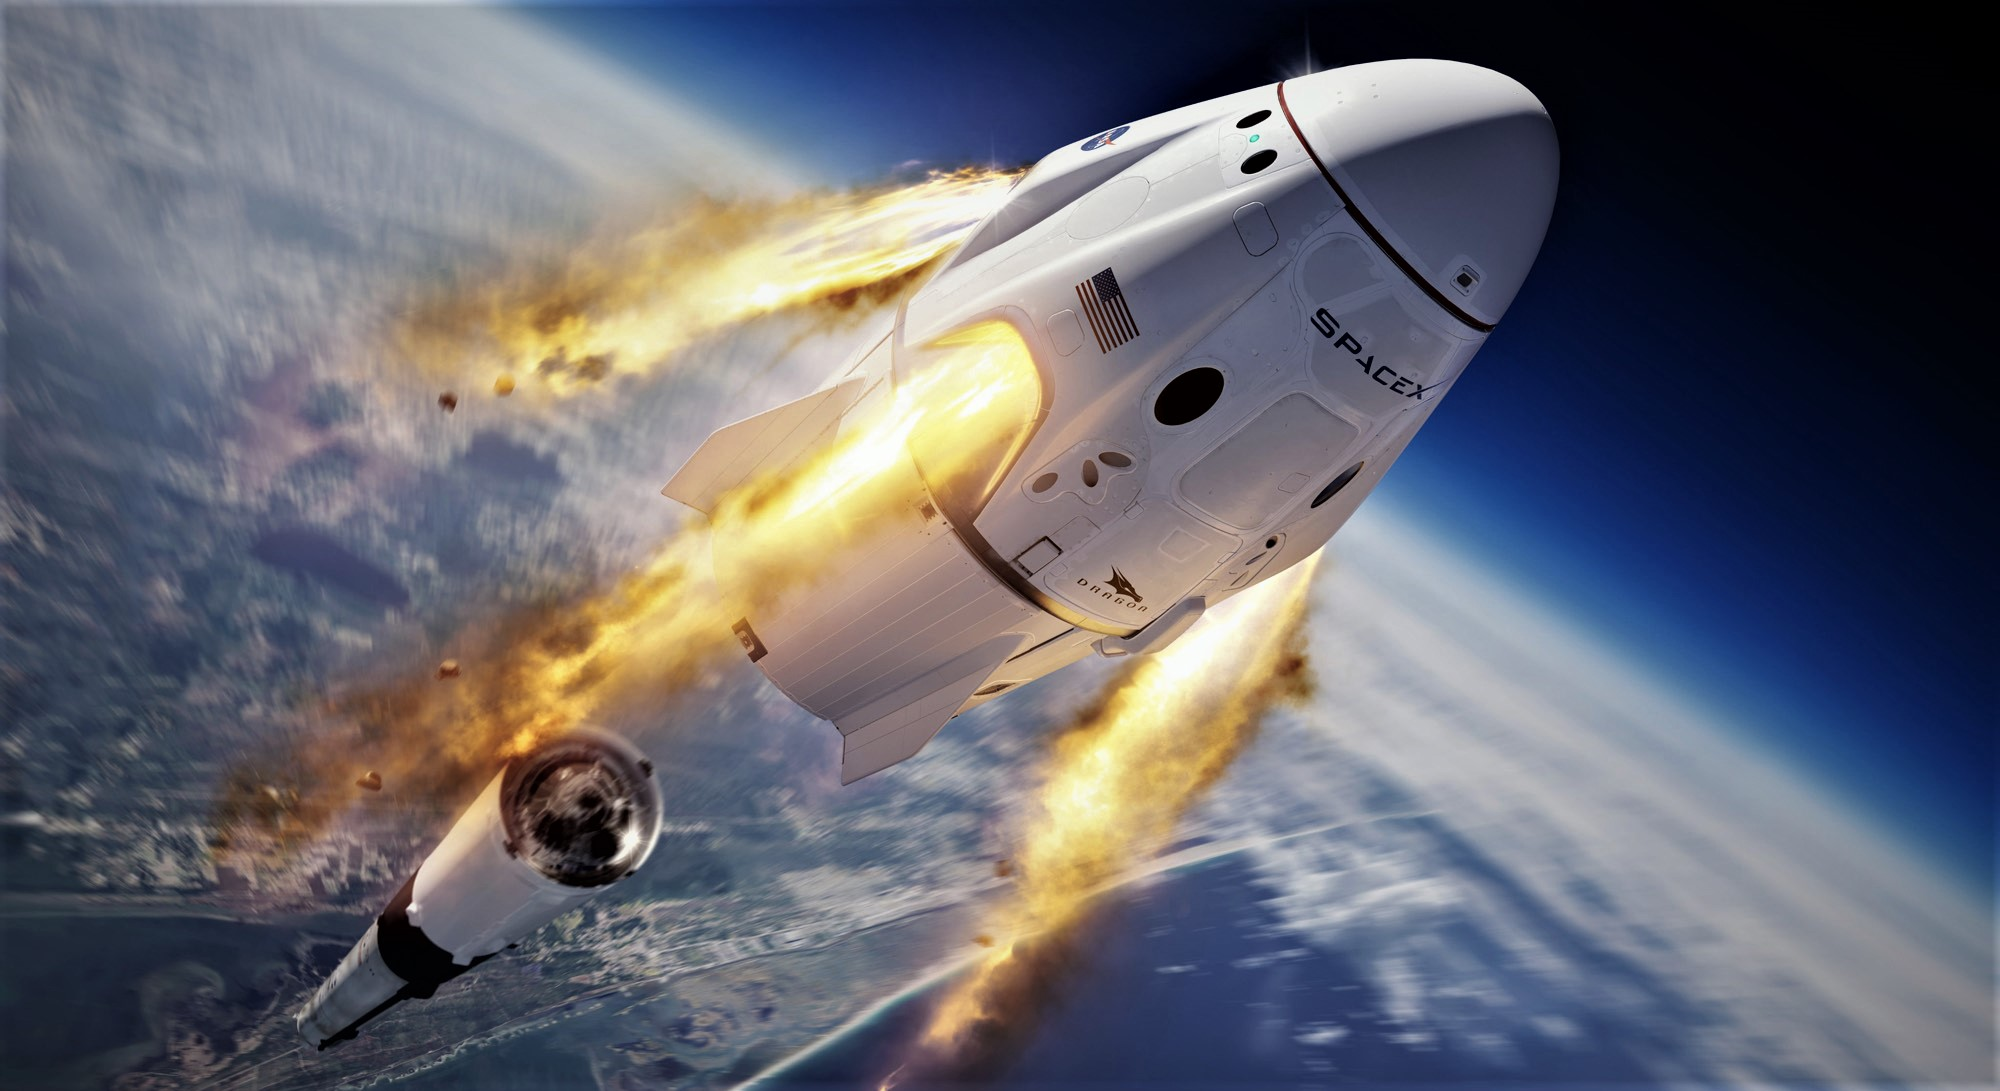 SpaceX and NASA send their first manned rocket into space 31